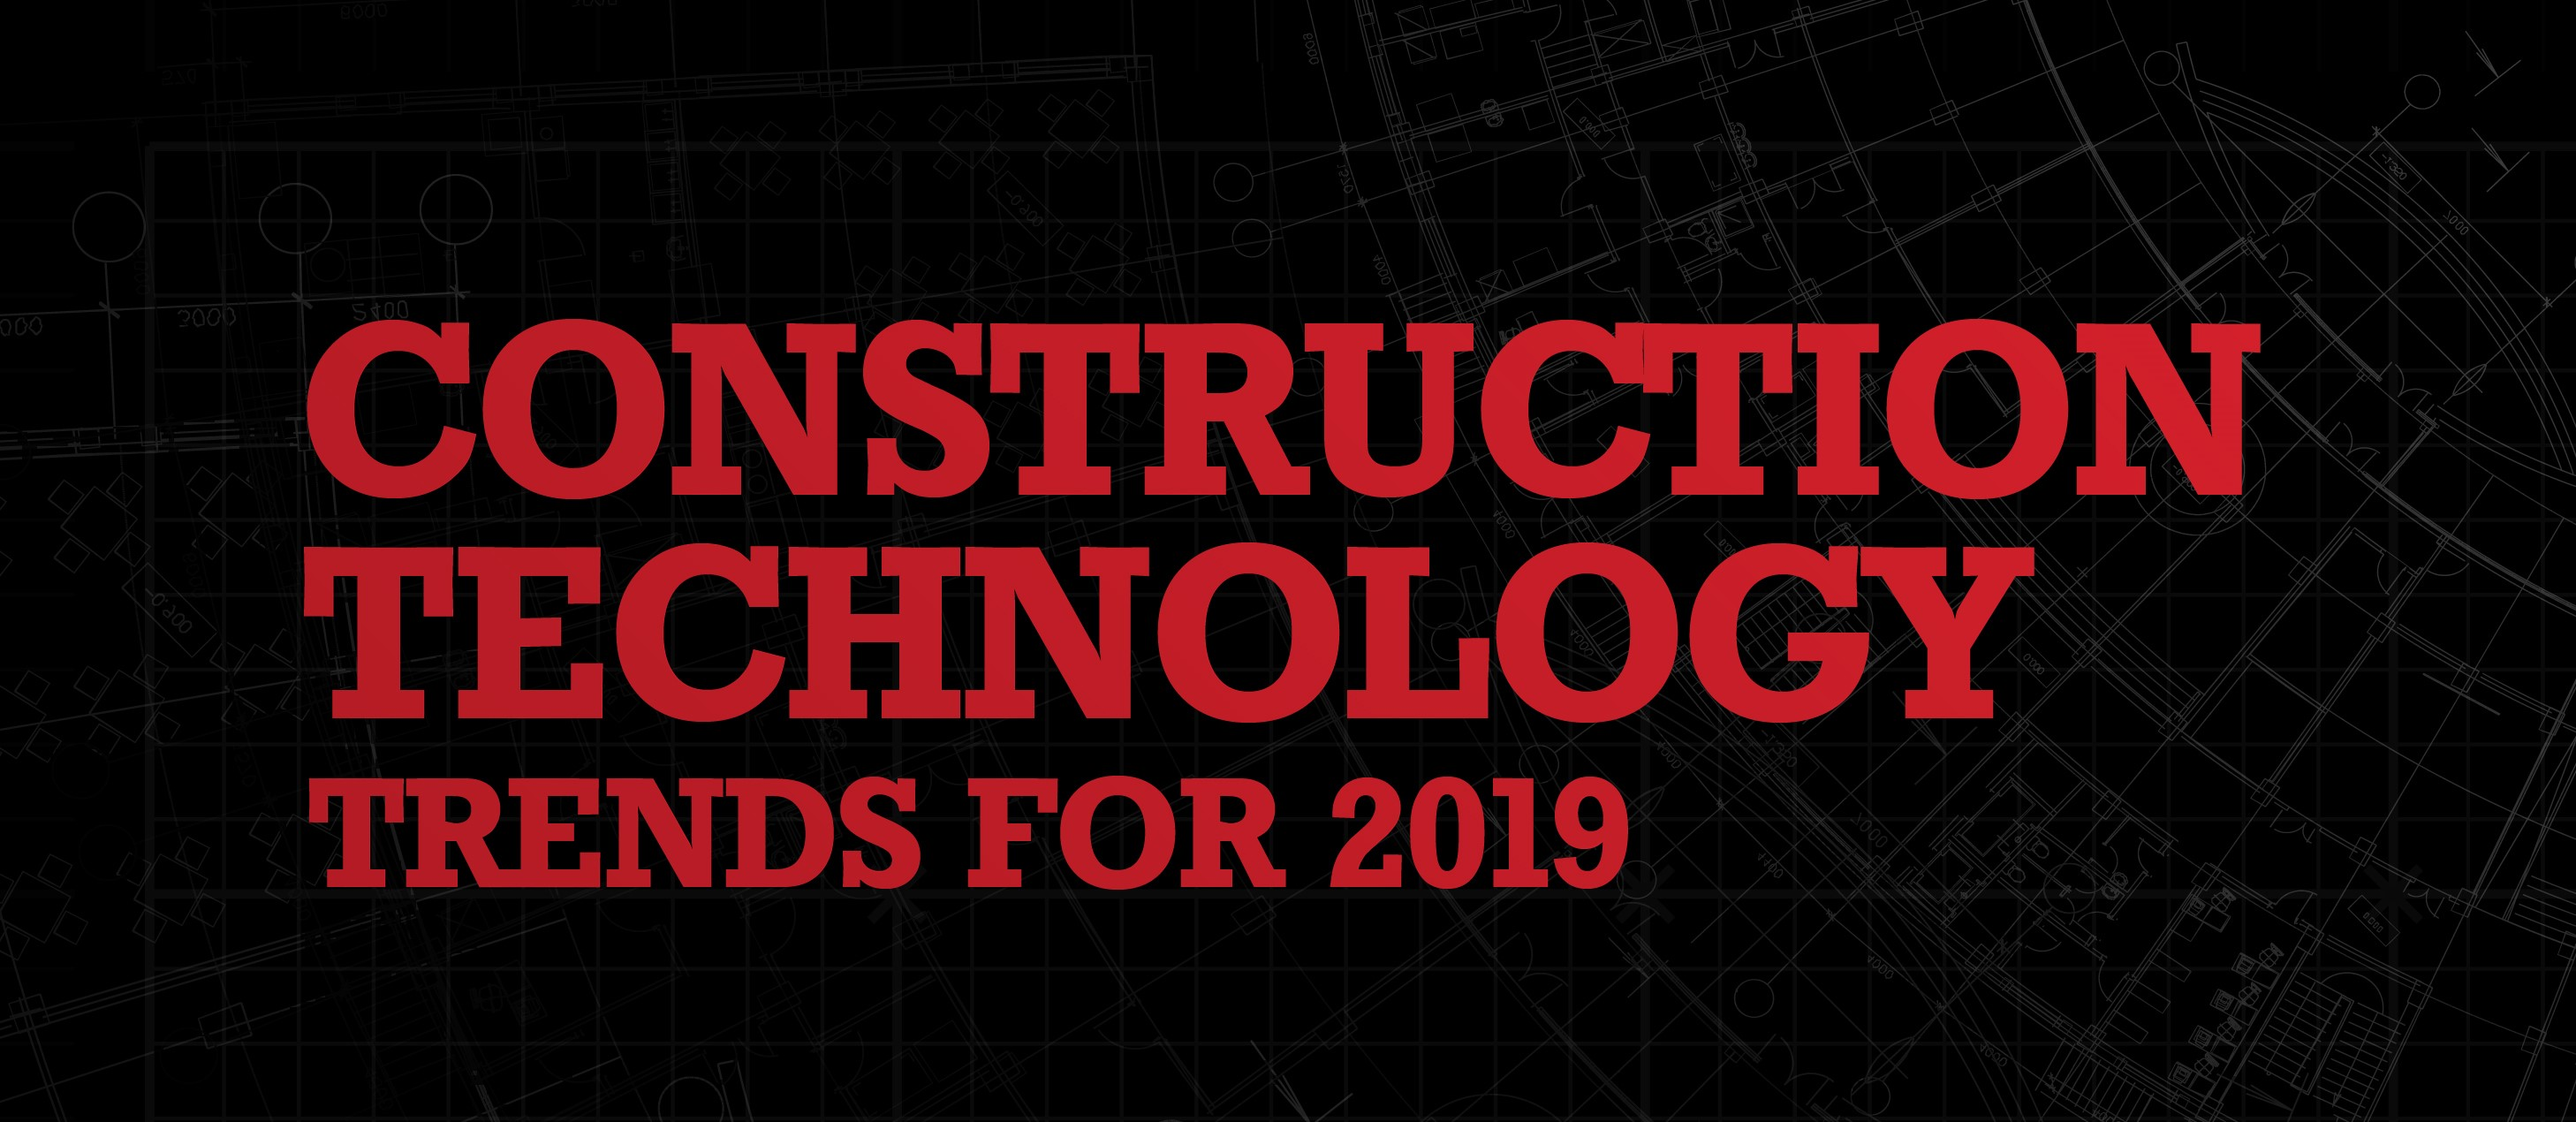 Construction technology trends for 2019